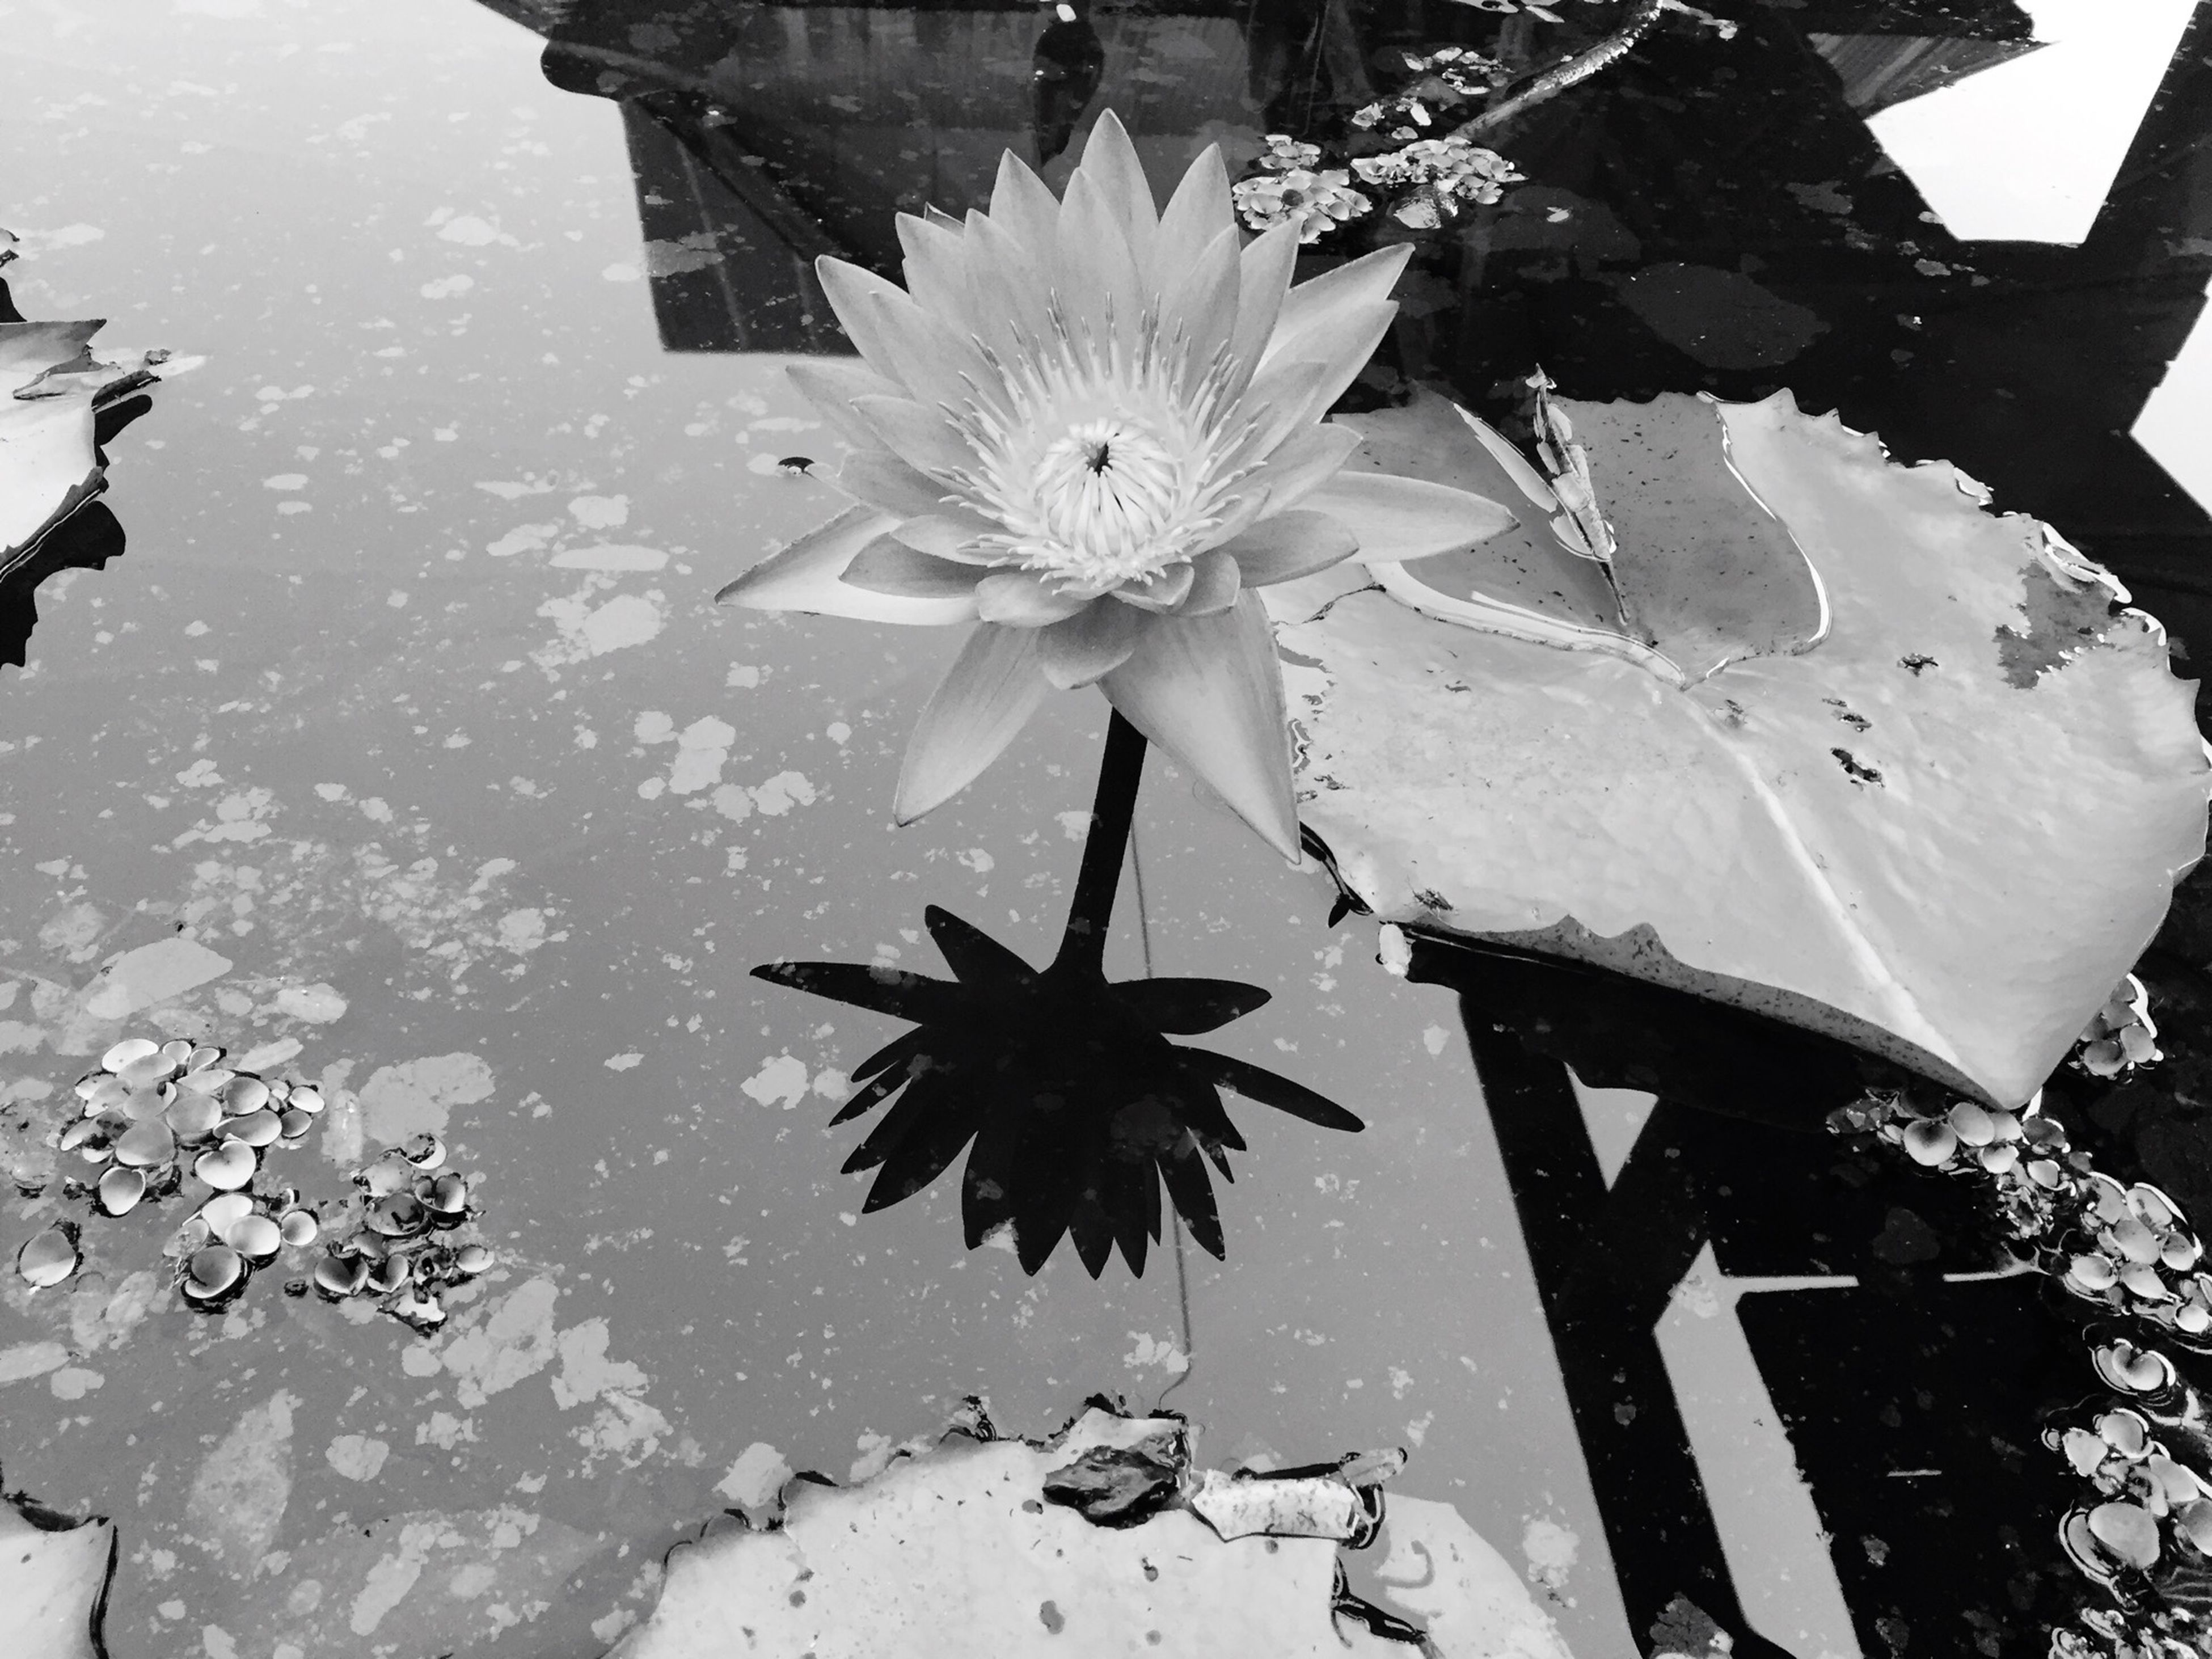 flower, petal, fragility, freshness, growth, flower head, water, leaf, beauty in nature, blooming, pond, plant, nature, single flower, high angle view, water lily, in bloom, day, floating on water, lake